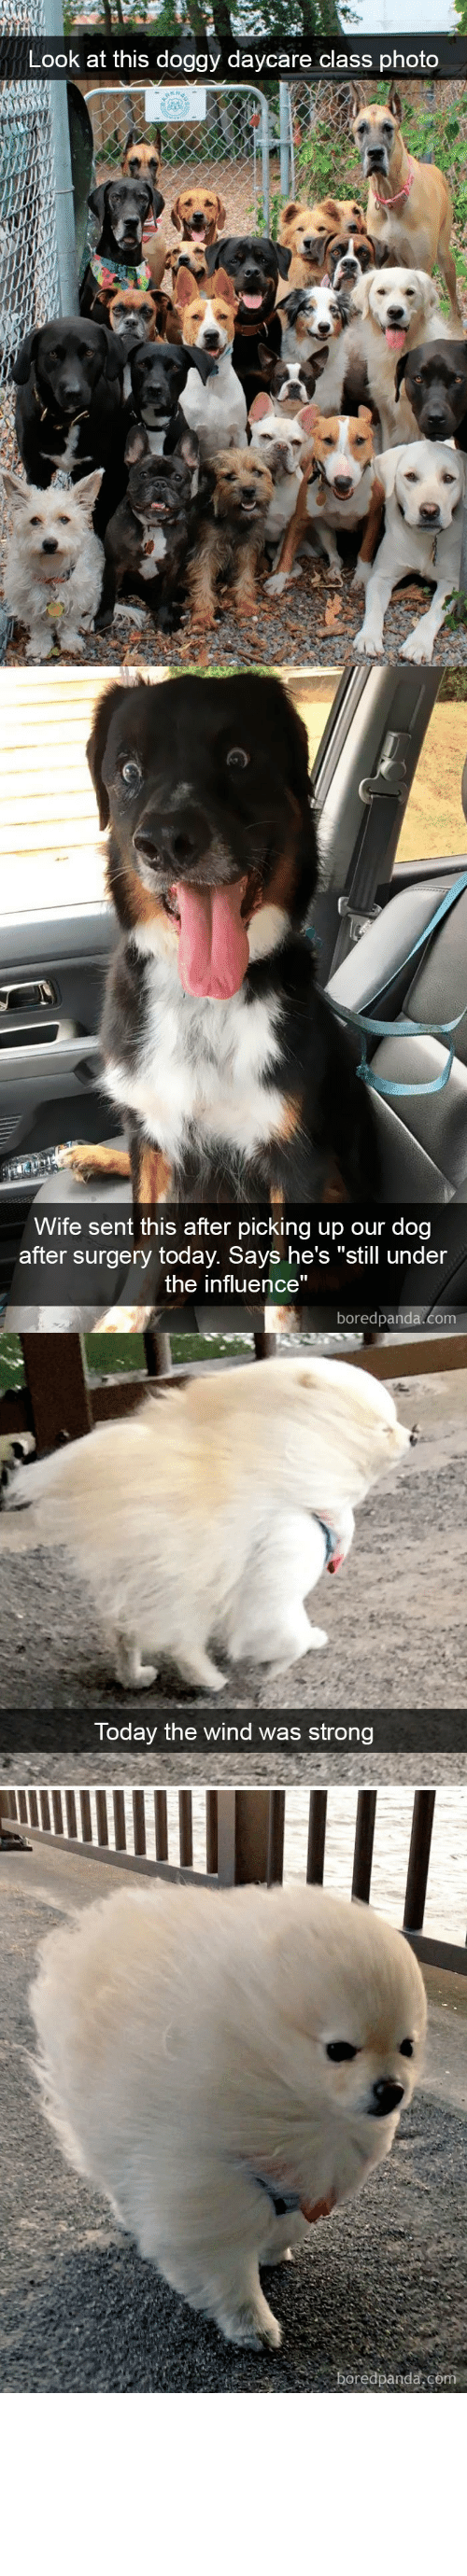 "surgery: Look at this doggy daycare class photo   Wife sent this after picking up our dog  after surgery today. Says he's ""still under  the influence""  boredpanda.com   Today the wind was strong  boredpanda,co babyanimalgifs:  Dog snapsvia boredpanda.com @animalsnaps​"